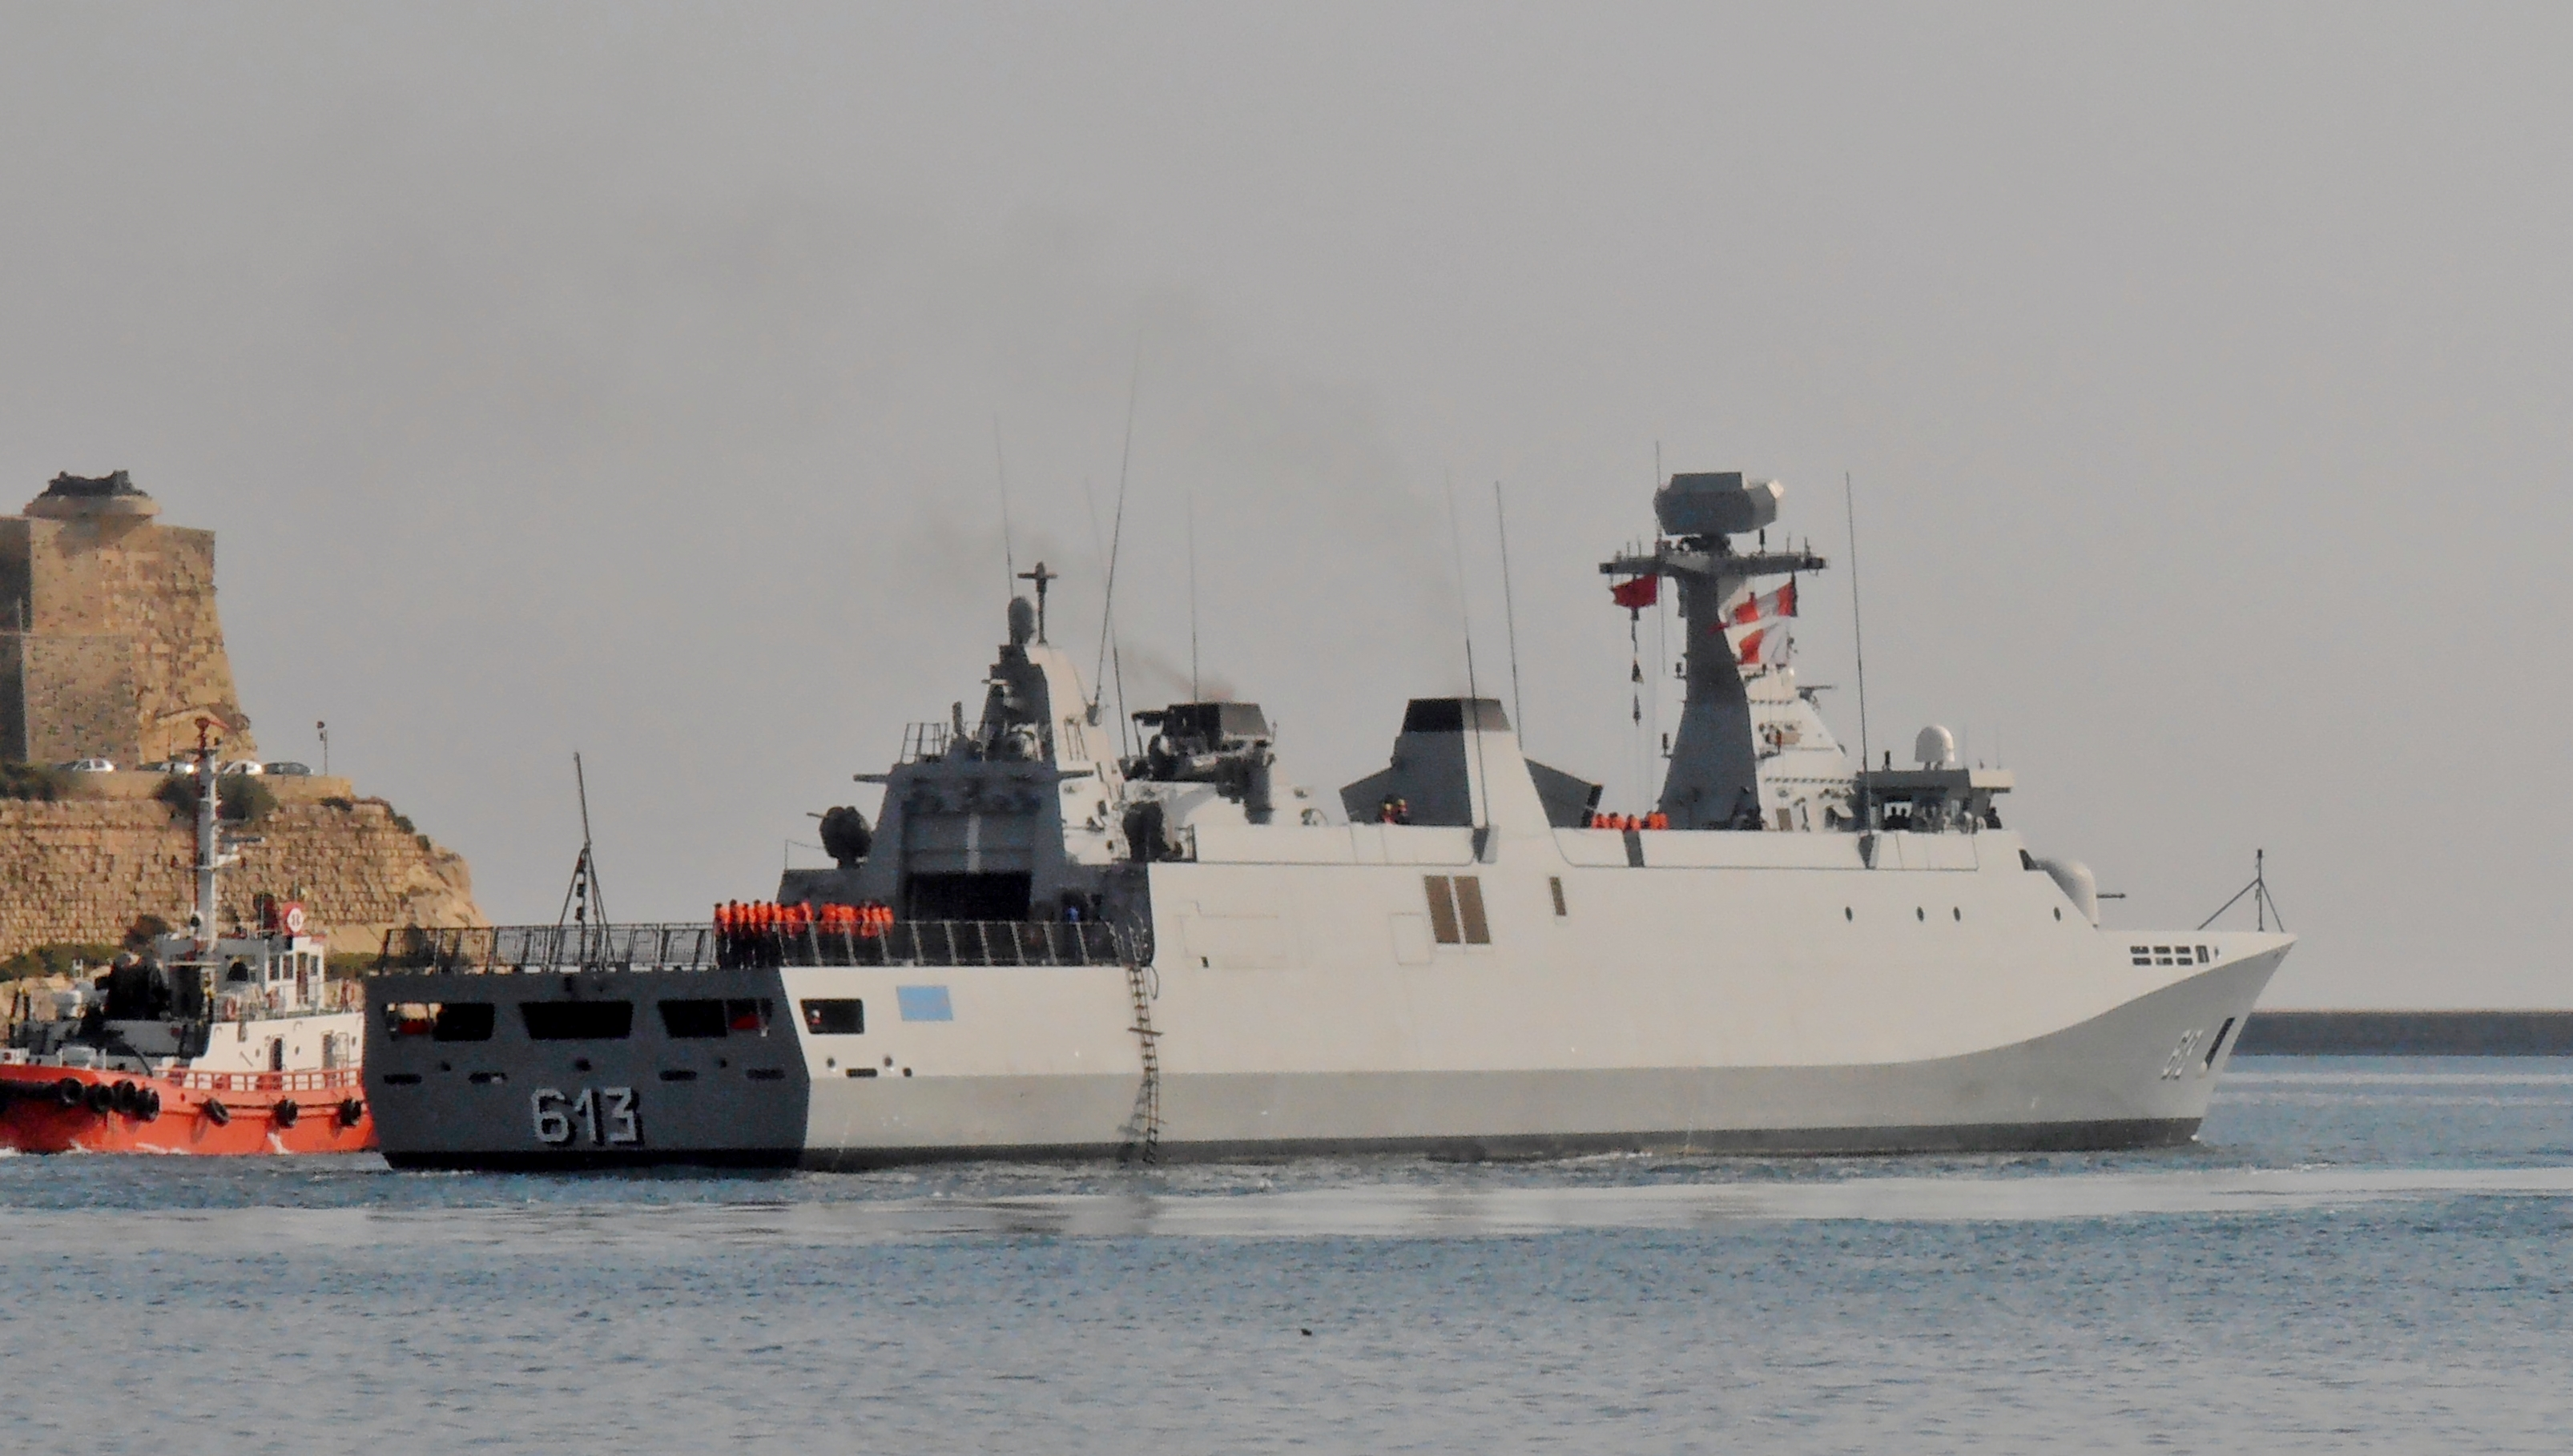 Royal Moroccan Navy Sigma class frigates / Frégates marocaines multimissions Sigma - Page 20 2232563